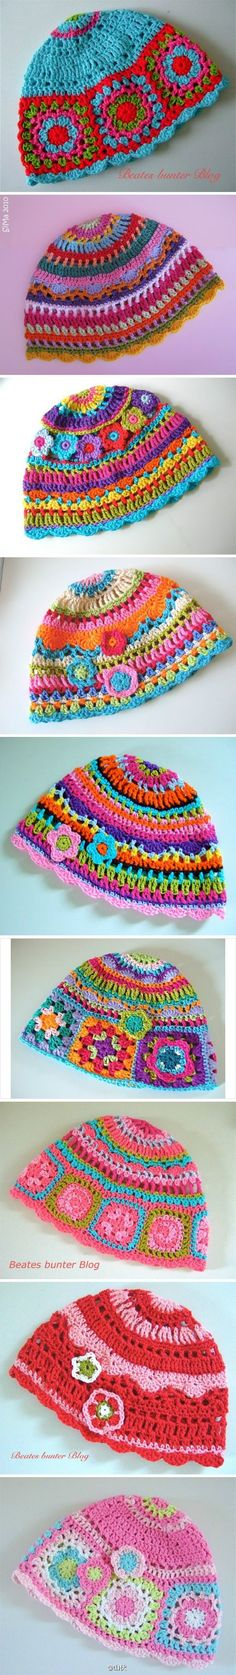 crochet hats...love the bright colors and mixed design